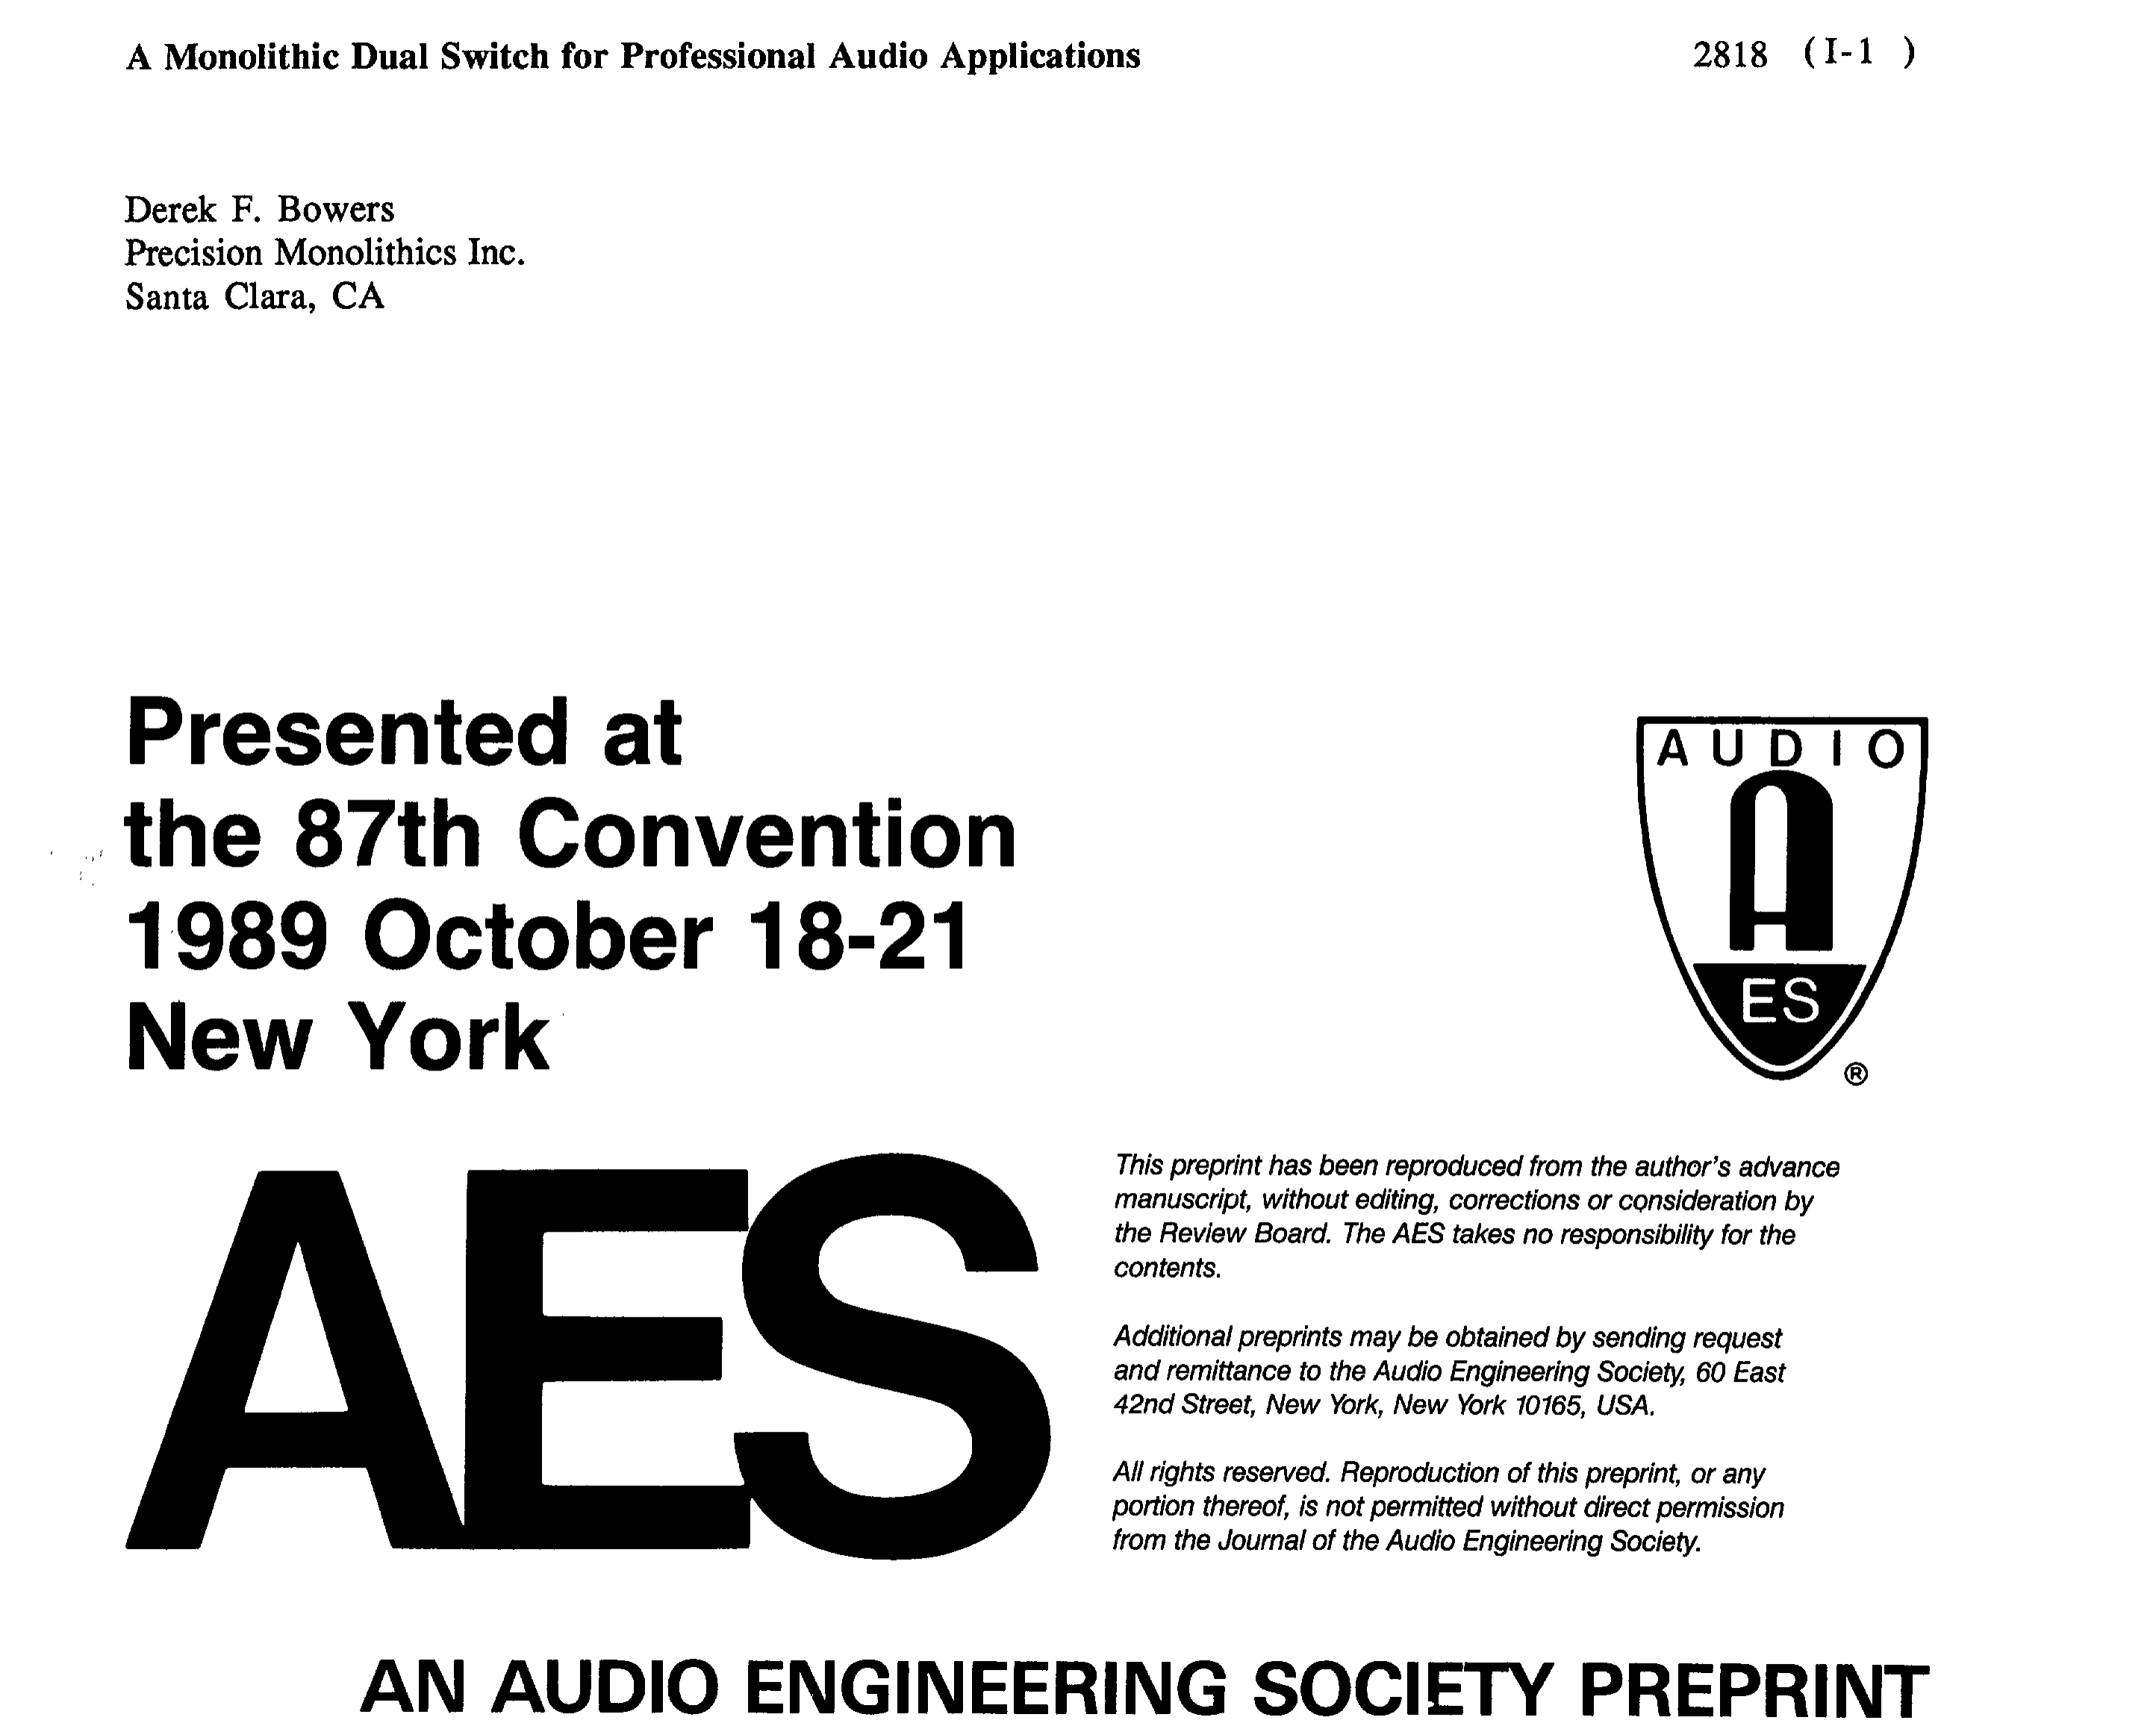 Aes E Library A Monolothic Dual Switch For Professional Audio Fet As Working Of Mosfet Or Jfet Applications